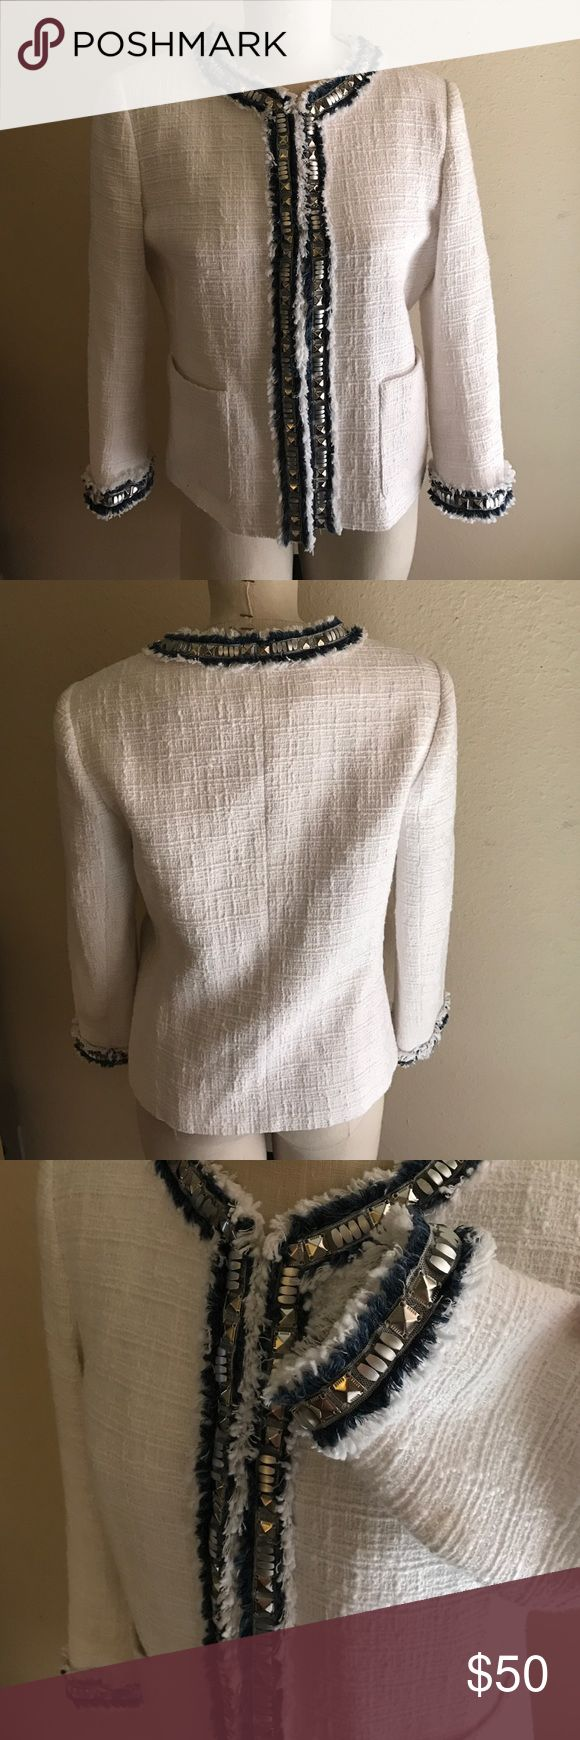 Stunning Boston Proper Blazer Boston proper blazer with blue and silver beading accents size 12 FLAWLESS. Worn maybe once. 100% cotton outer 100% polyester inner. Boston Proper Jackets & Coats Blazers